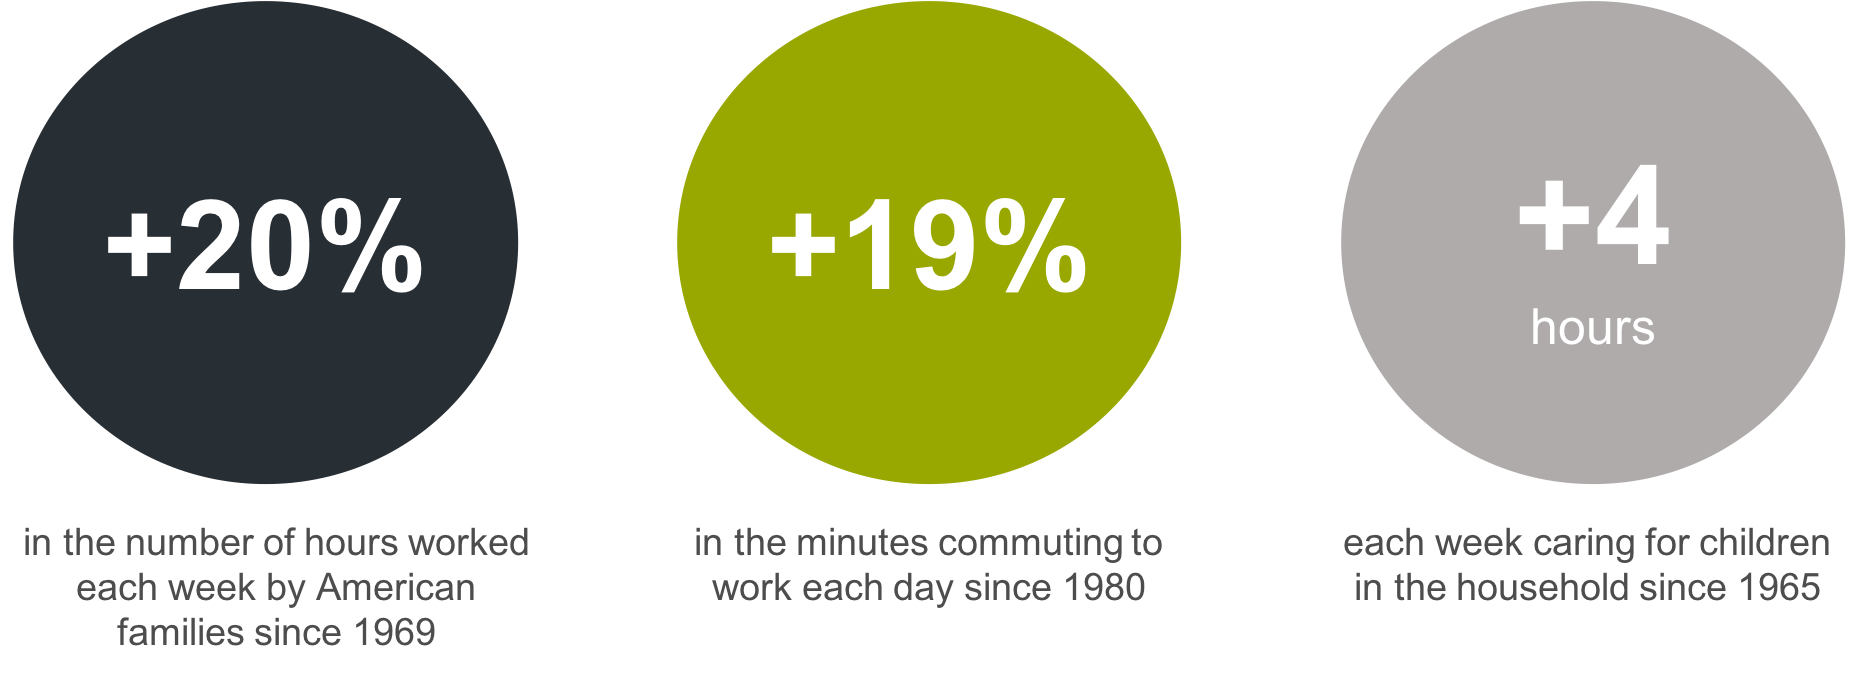 A graphic showing the increase in time spent working, commuting, and caring for children for the average American family.